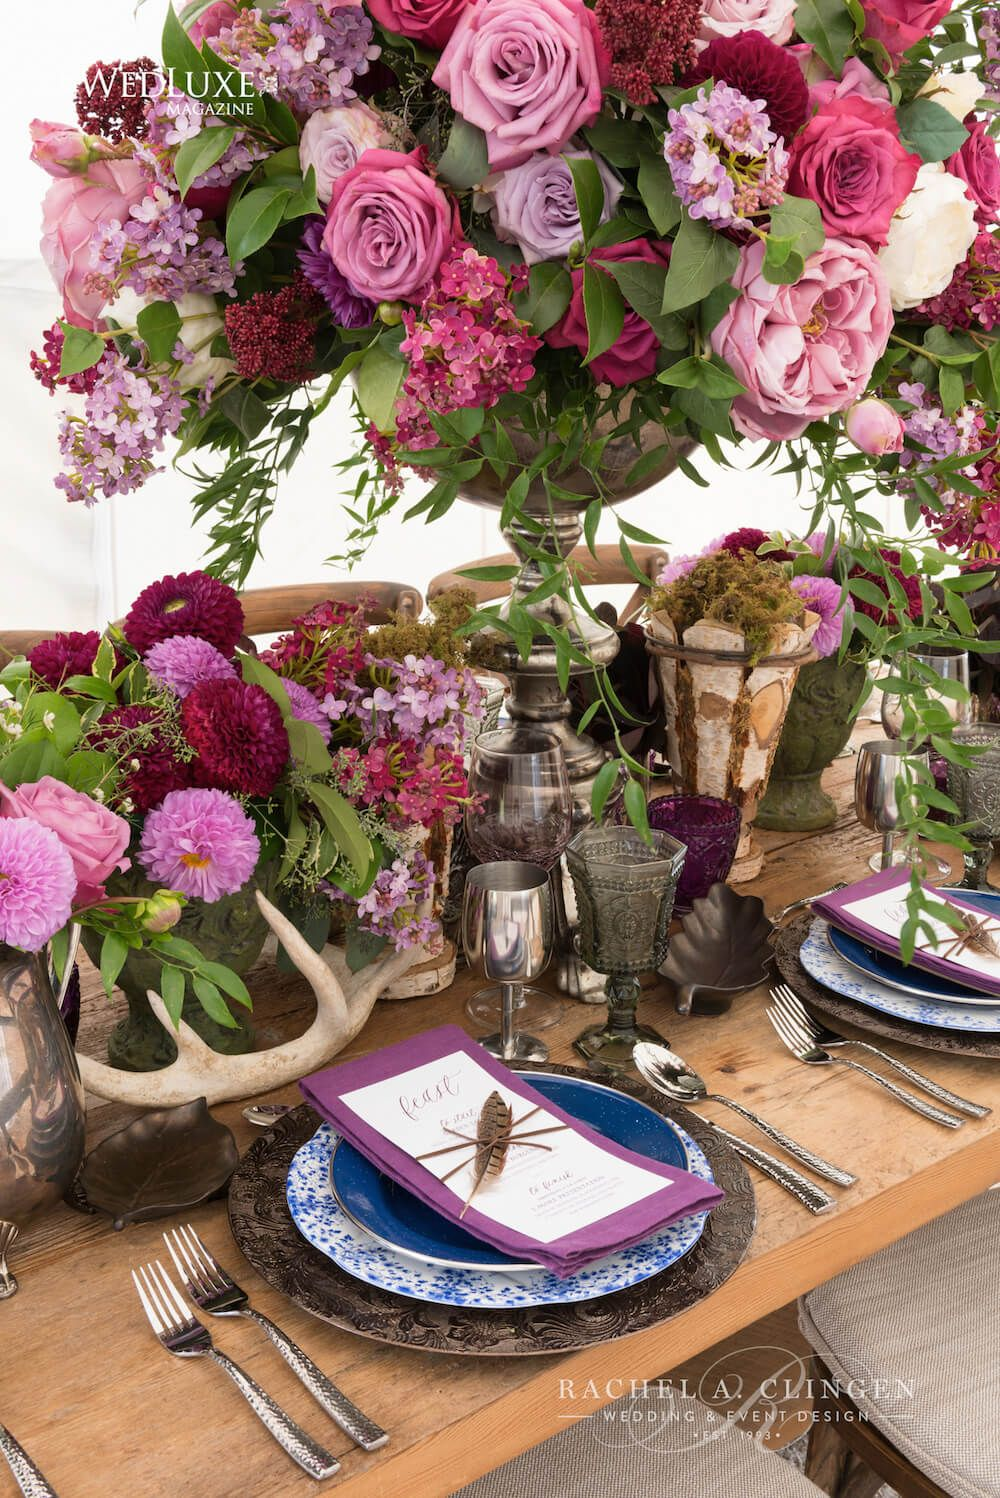 Lilac wedding decoration ideas  Purple floral centrepieces by Rachel A Clingen for rustic glamping